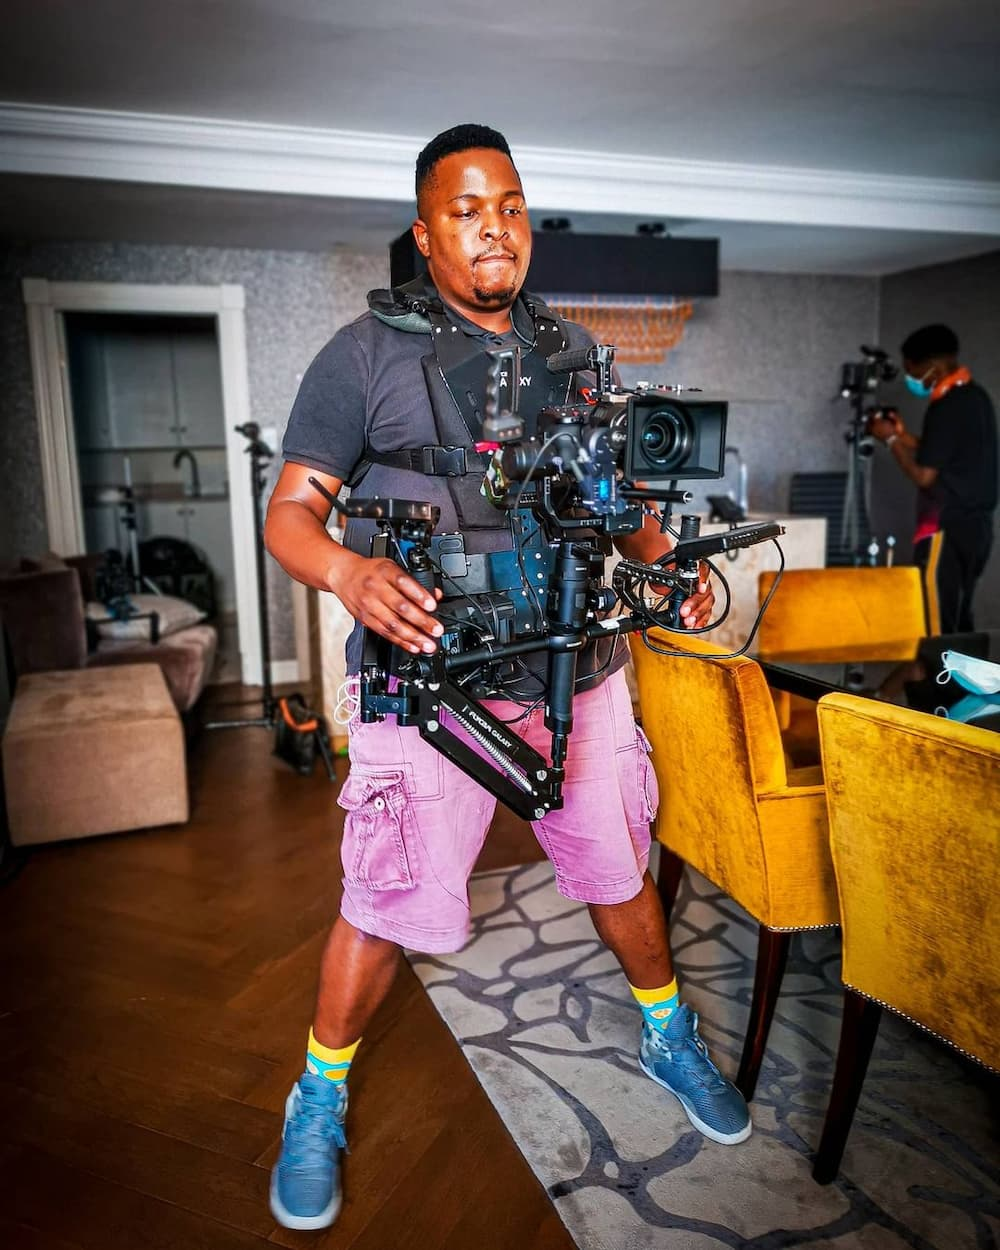 what does it take to be a music video director?